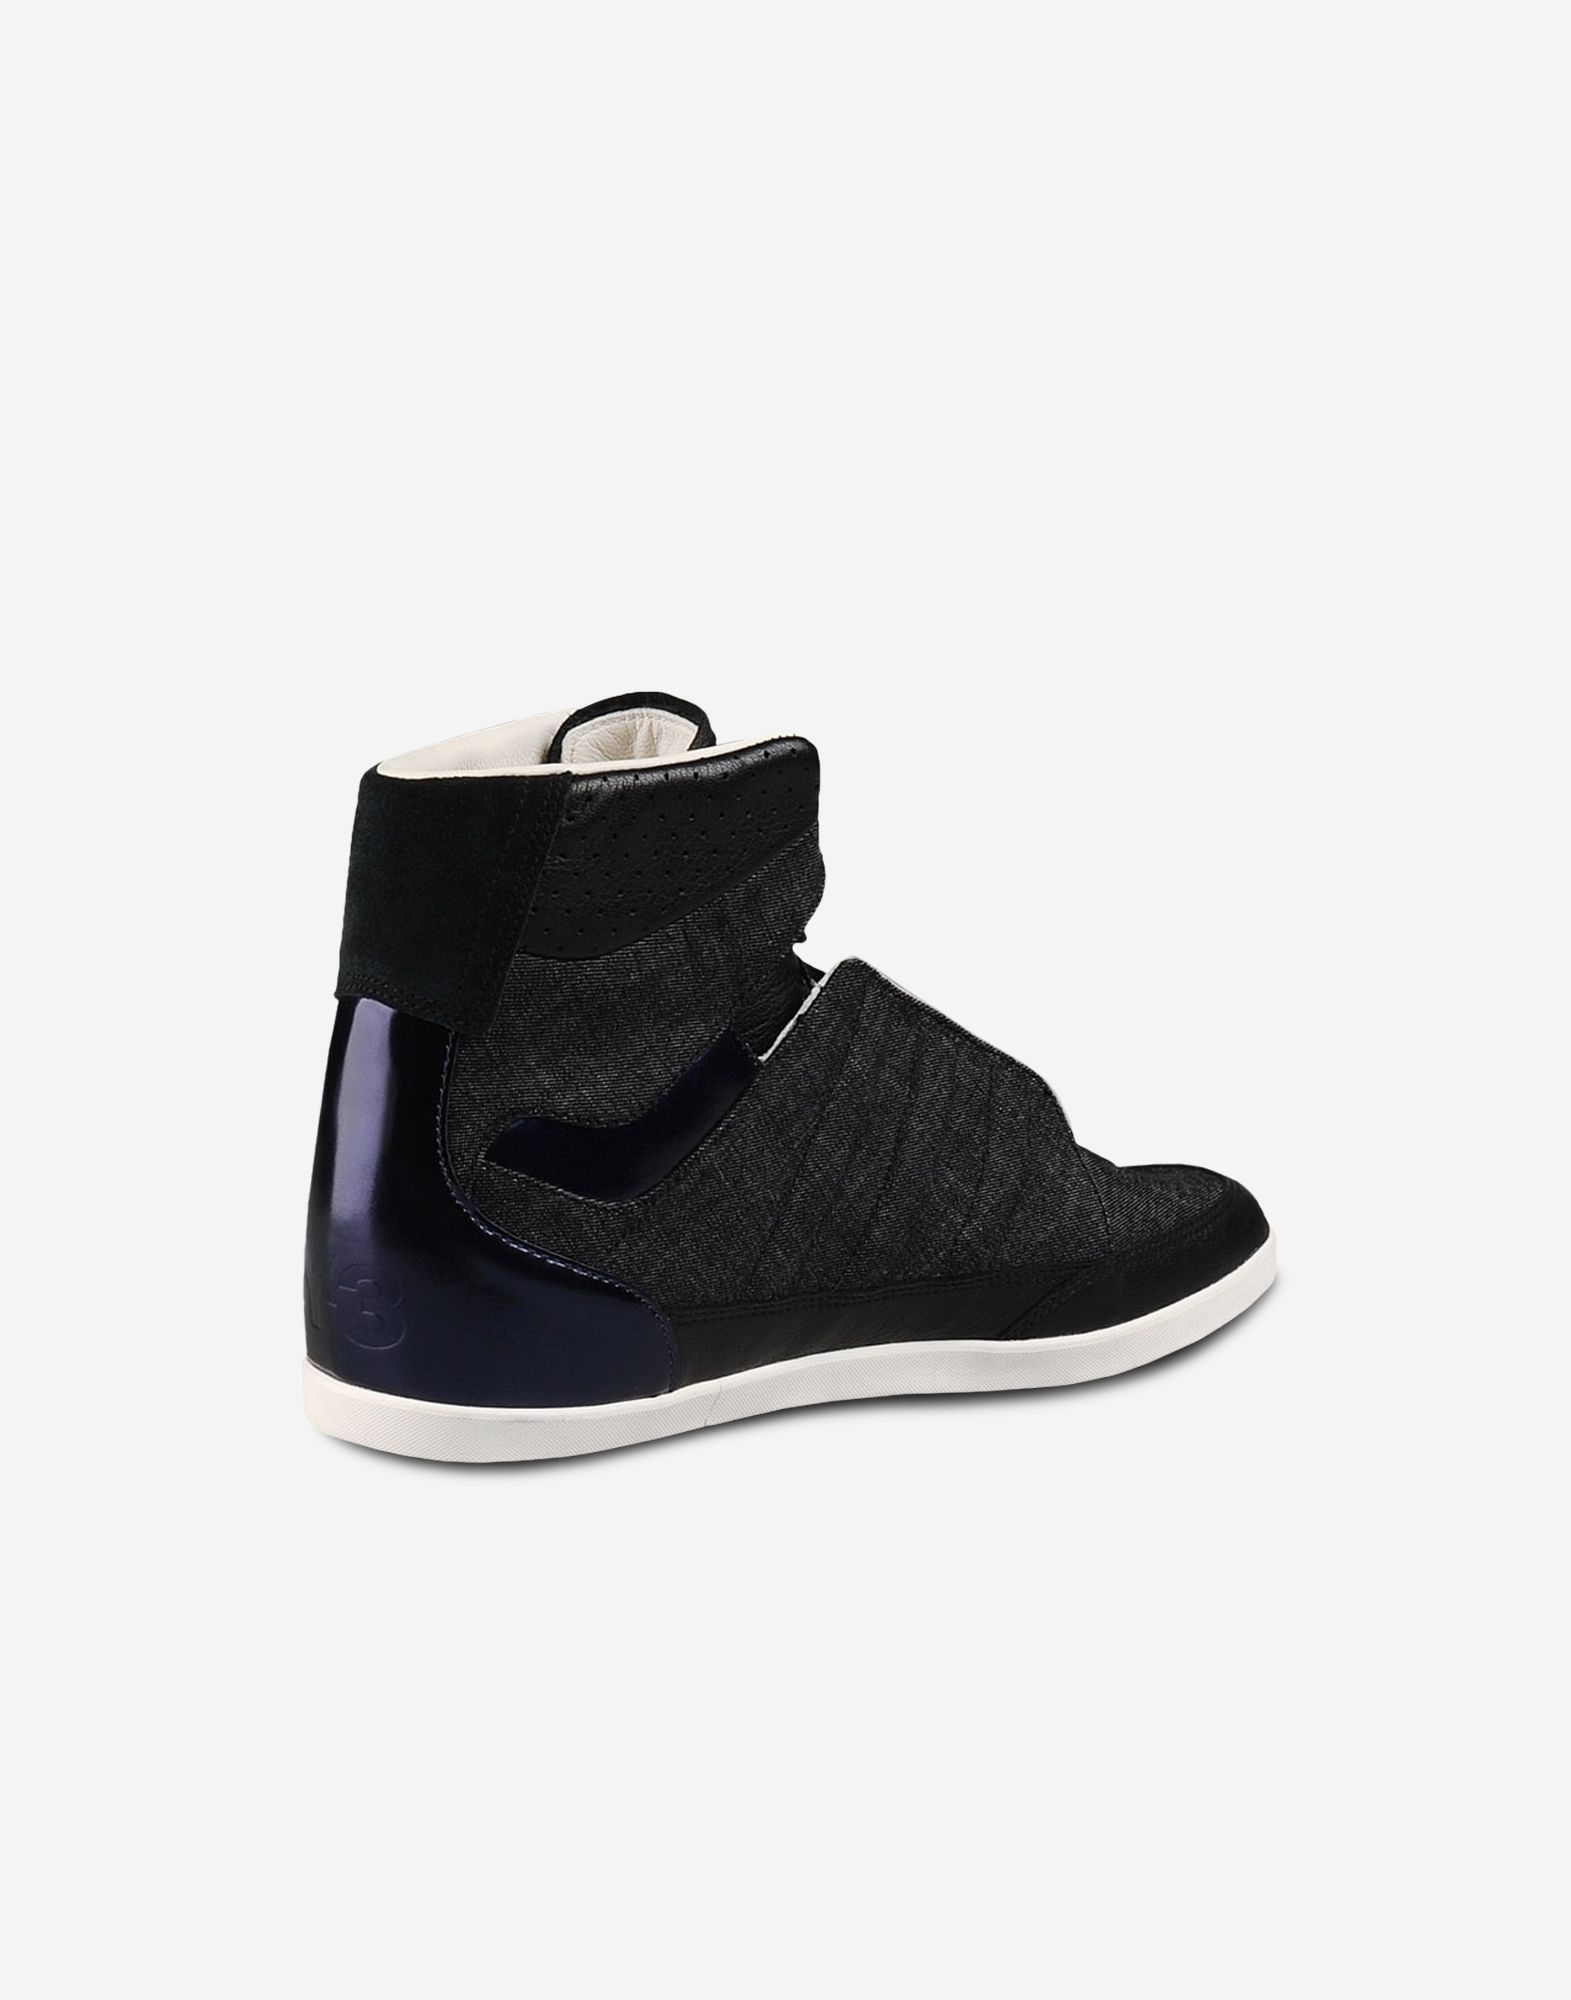 Y-3 Y-3 Honja High High-top sneakers Man d